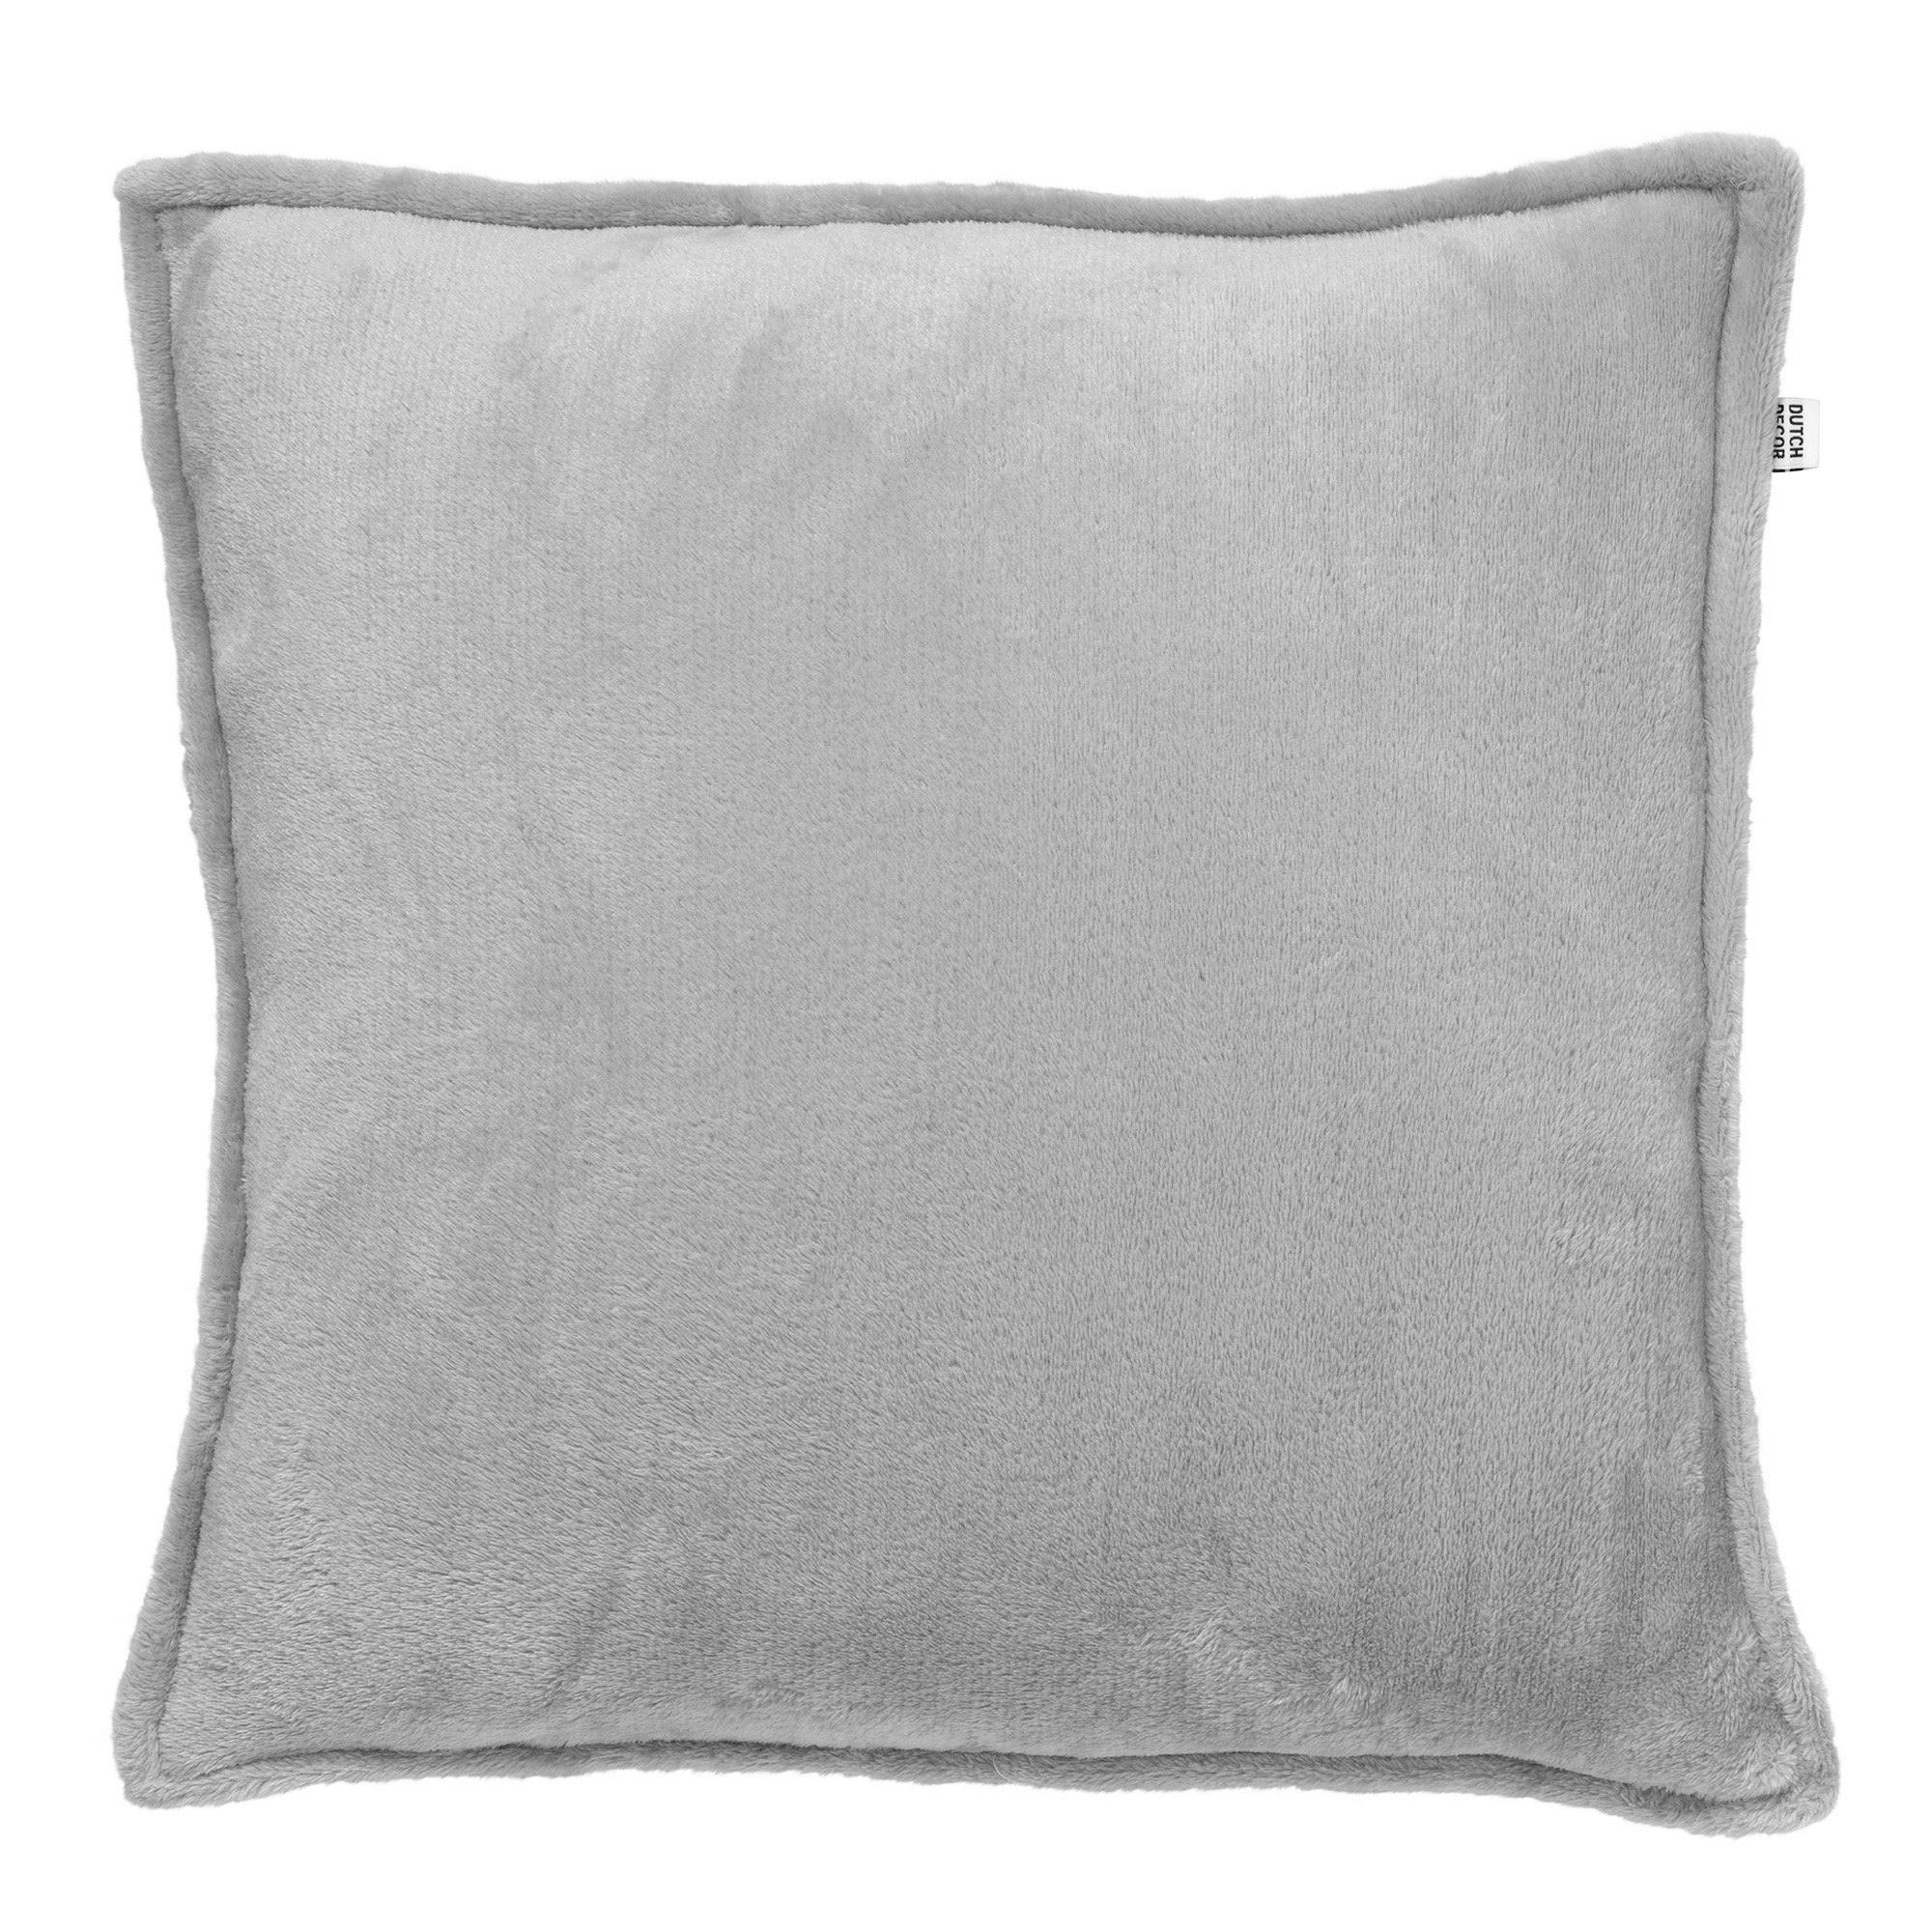 CILLY - Sierkussen van fleece Micro Chip 45x45 cm